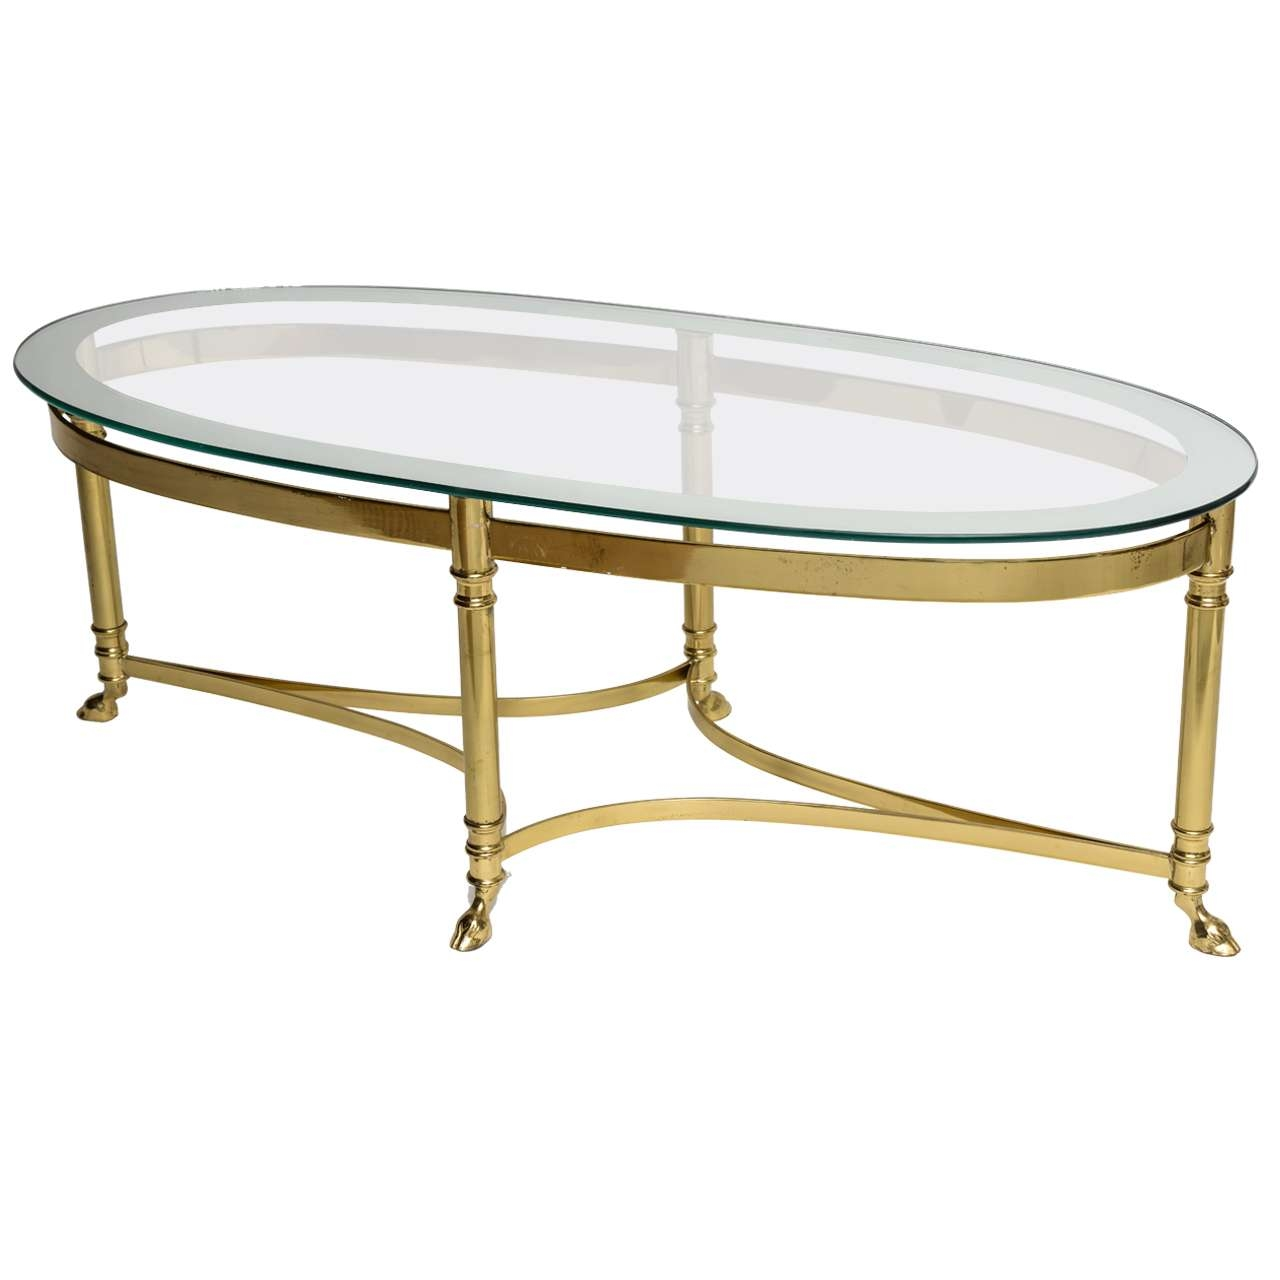 Widely Used Antique Glass Top Coffee Tables Inside Coffee Table: Oval Glass Top Coffee Table Glass For Table Tops (View 20 of 20)